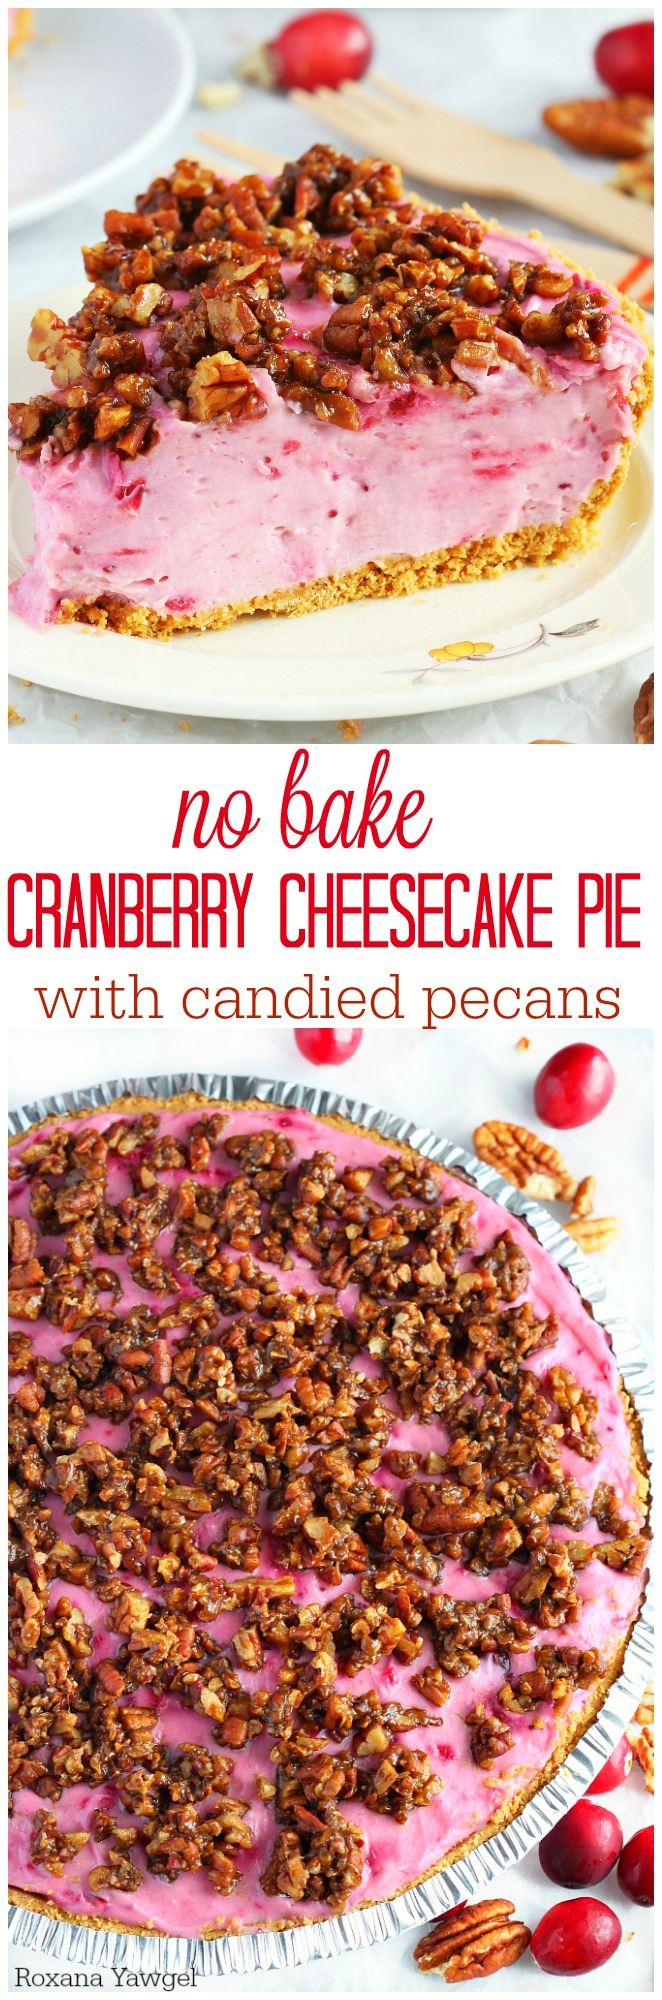 Canned Cranberry Cake Filling